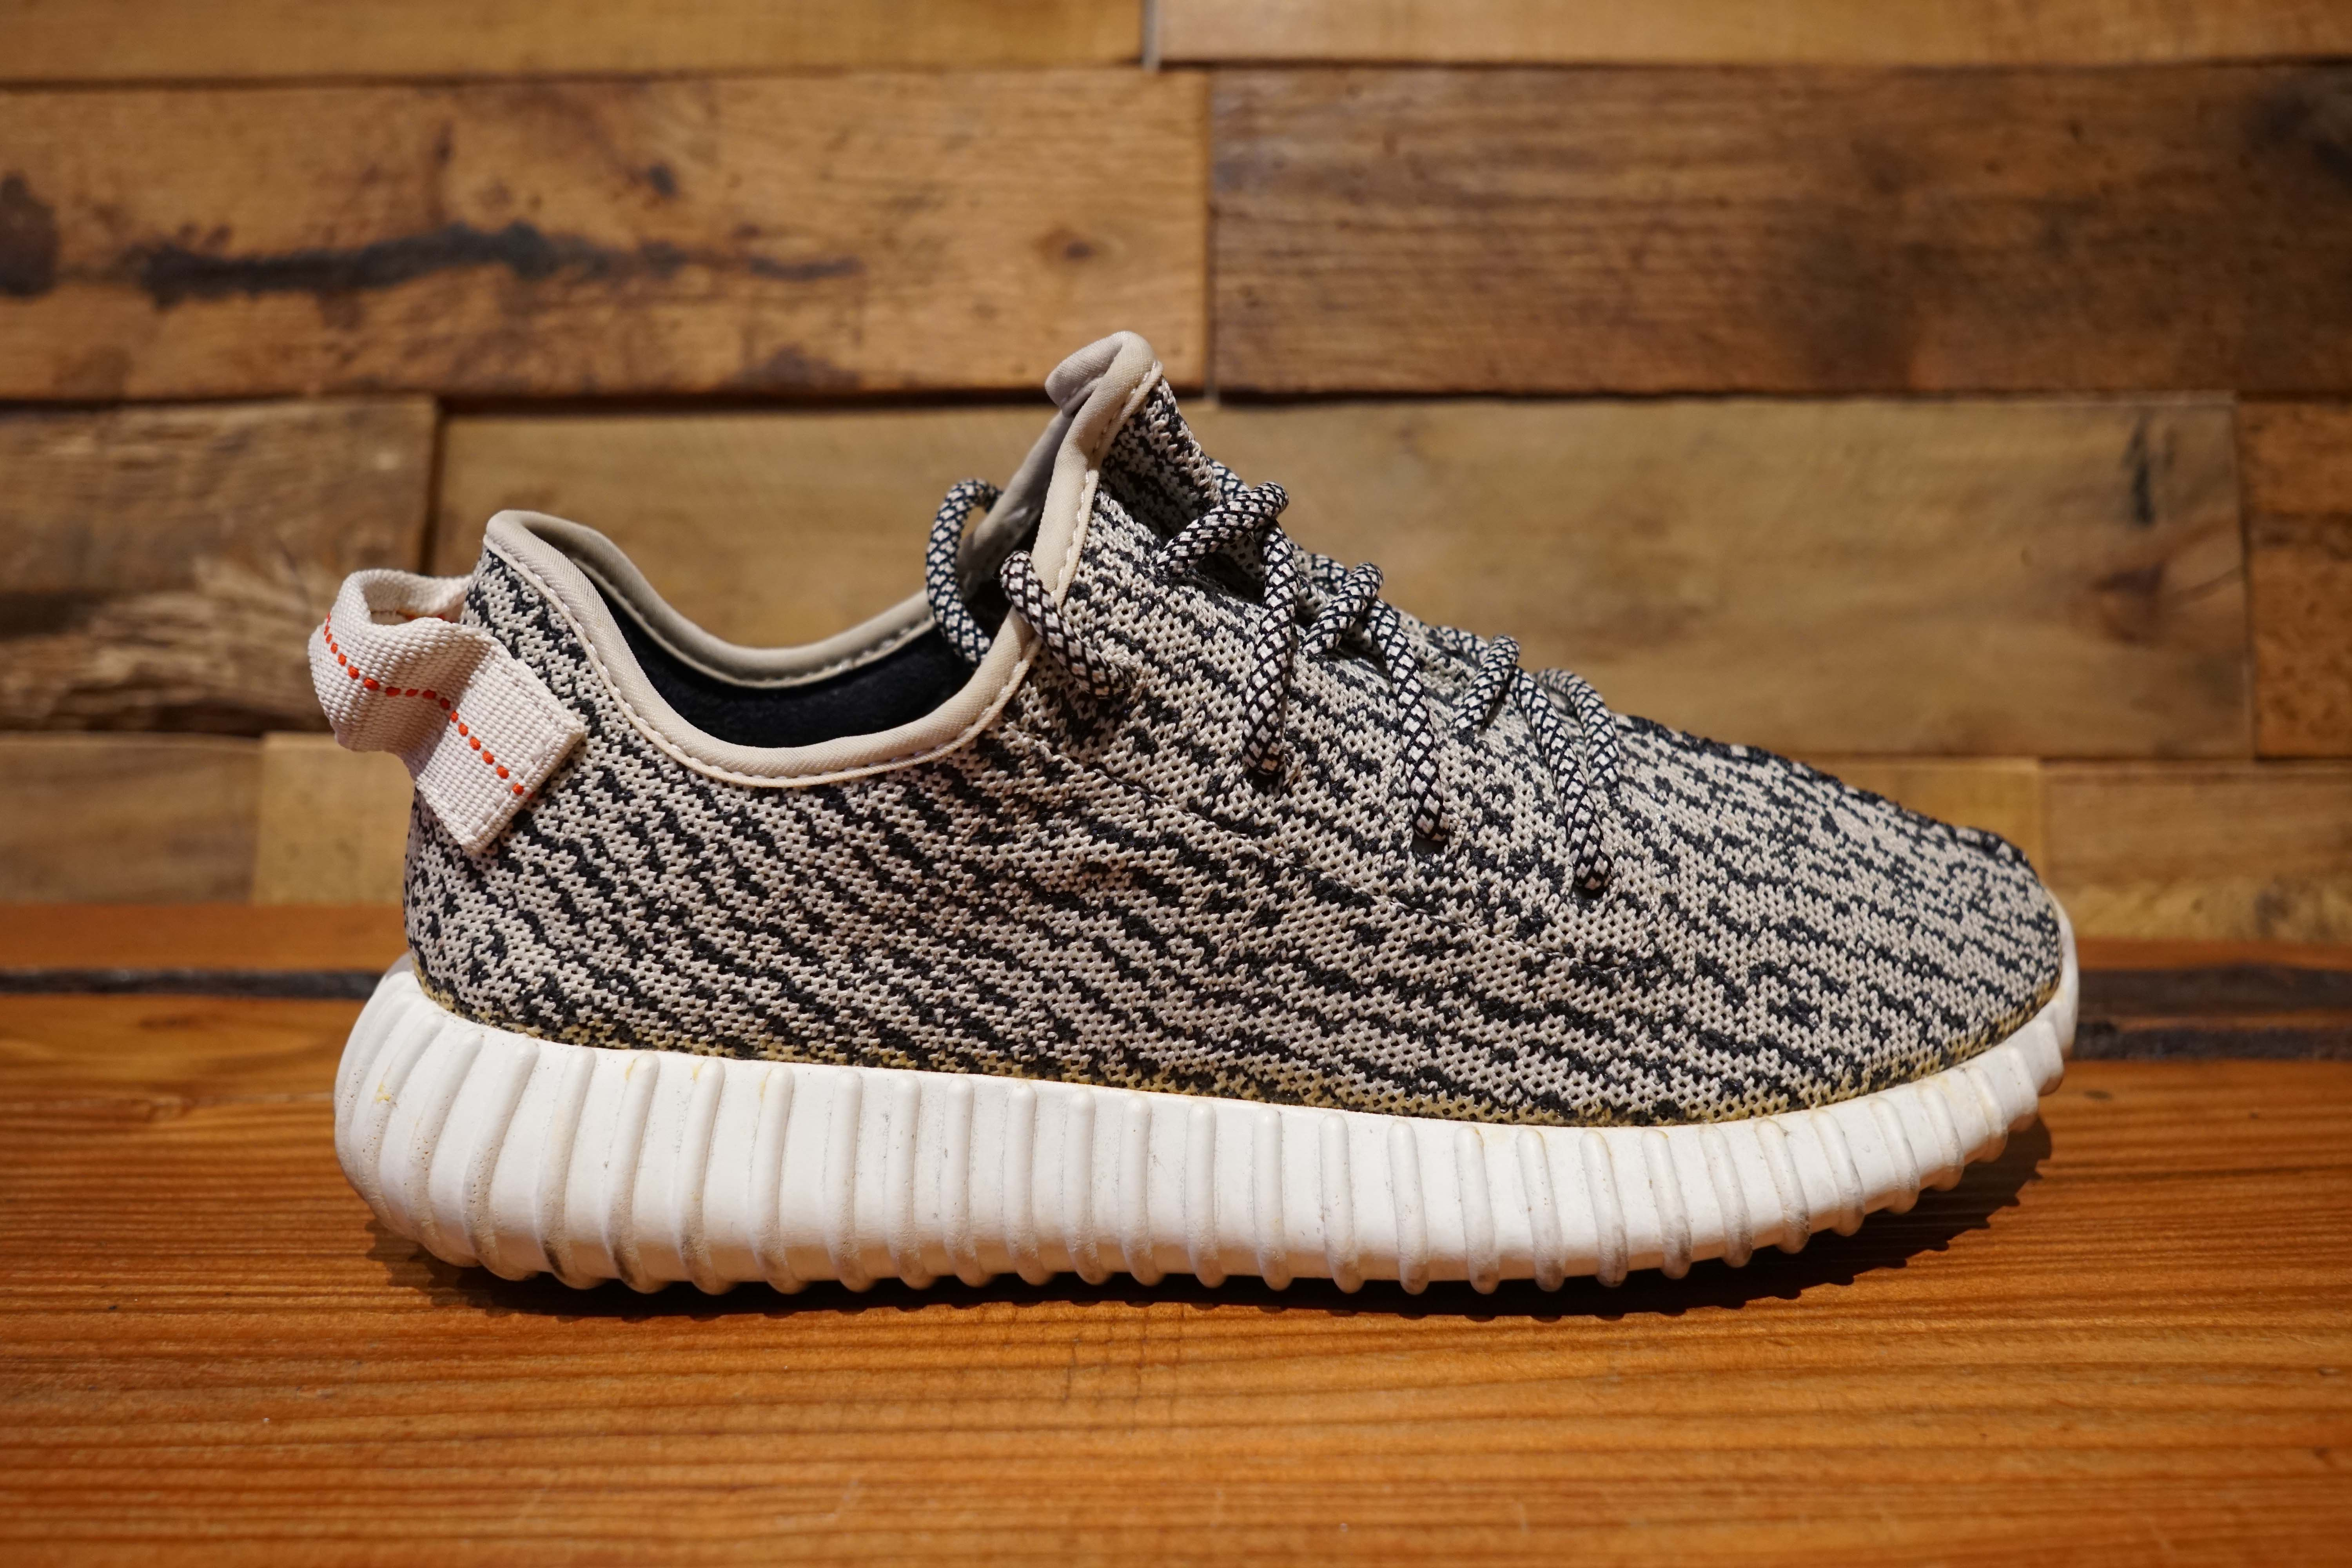 Yeezy-Boost-350-TURTLE-DOVE-2015-Used-Original-Box-Size-7-2-2867_24289A.jpg